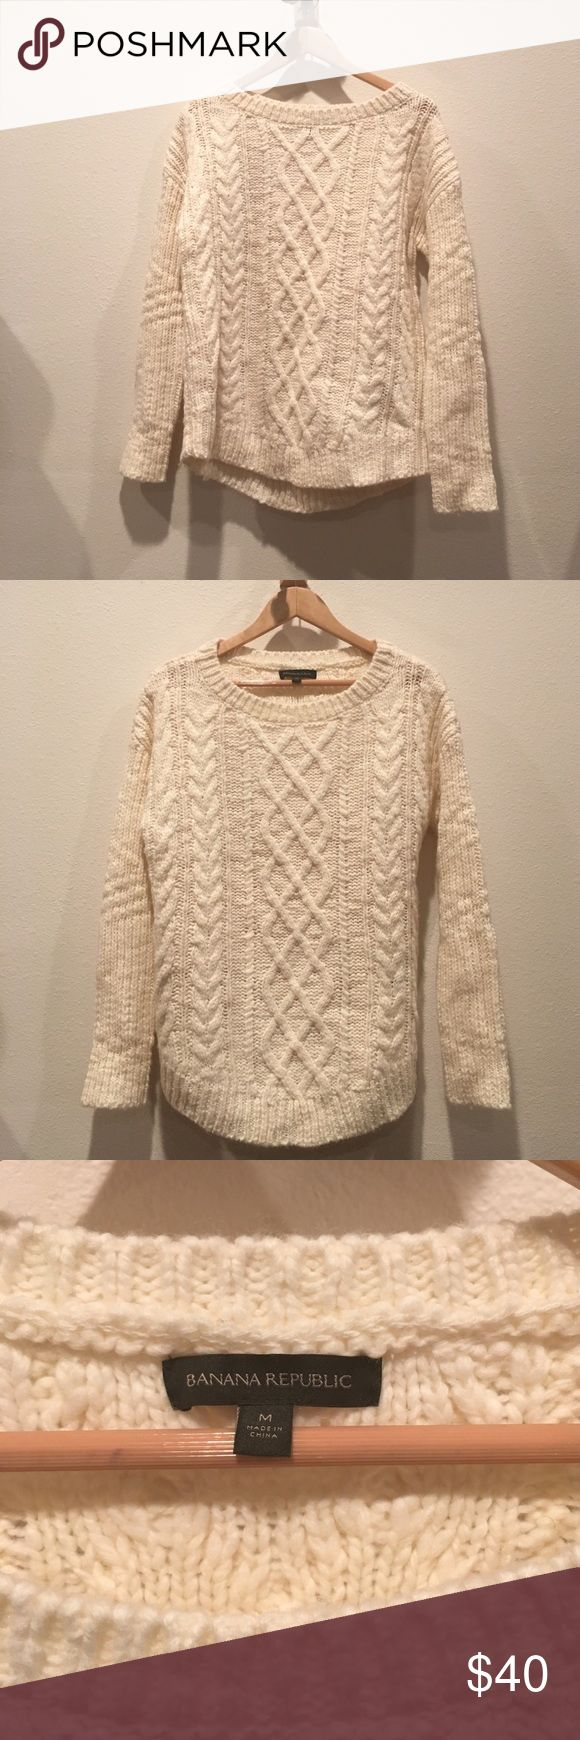 Banana Republic Chunky Cable Knit Sweater Banana Republic, wool, cream, chunky cable knit sweater Banana Republic Sweaters